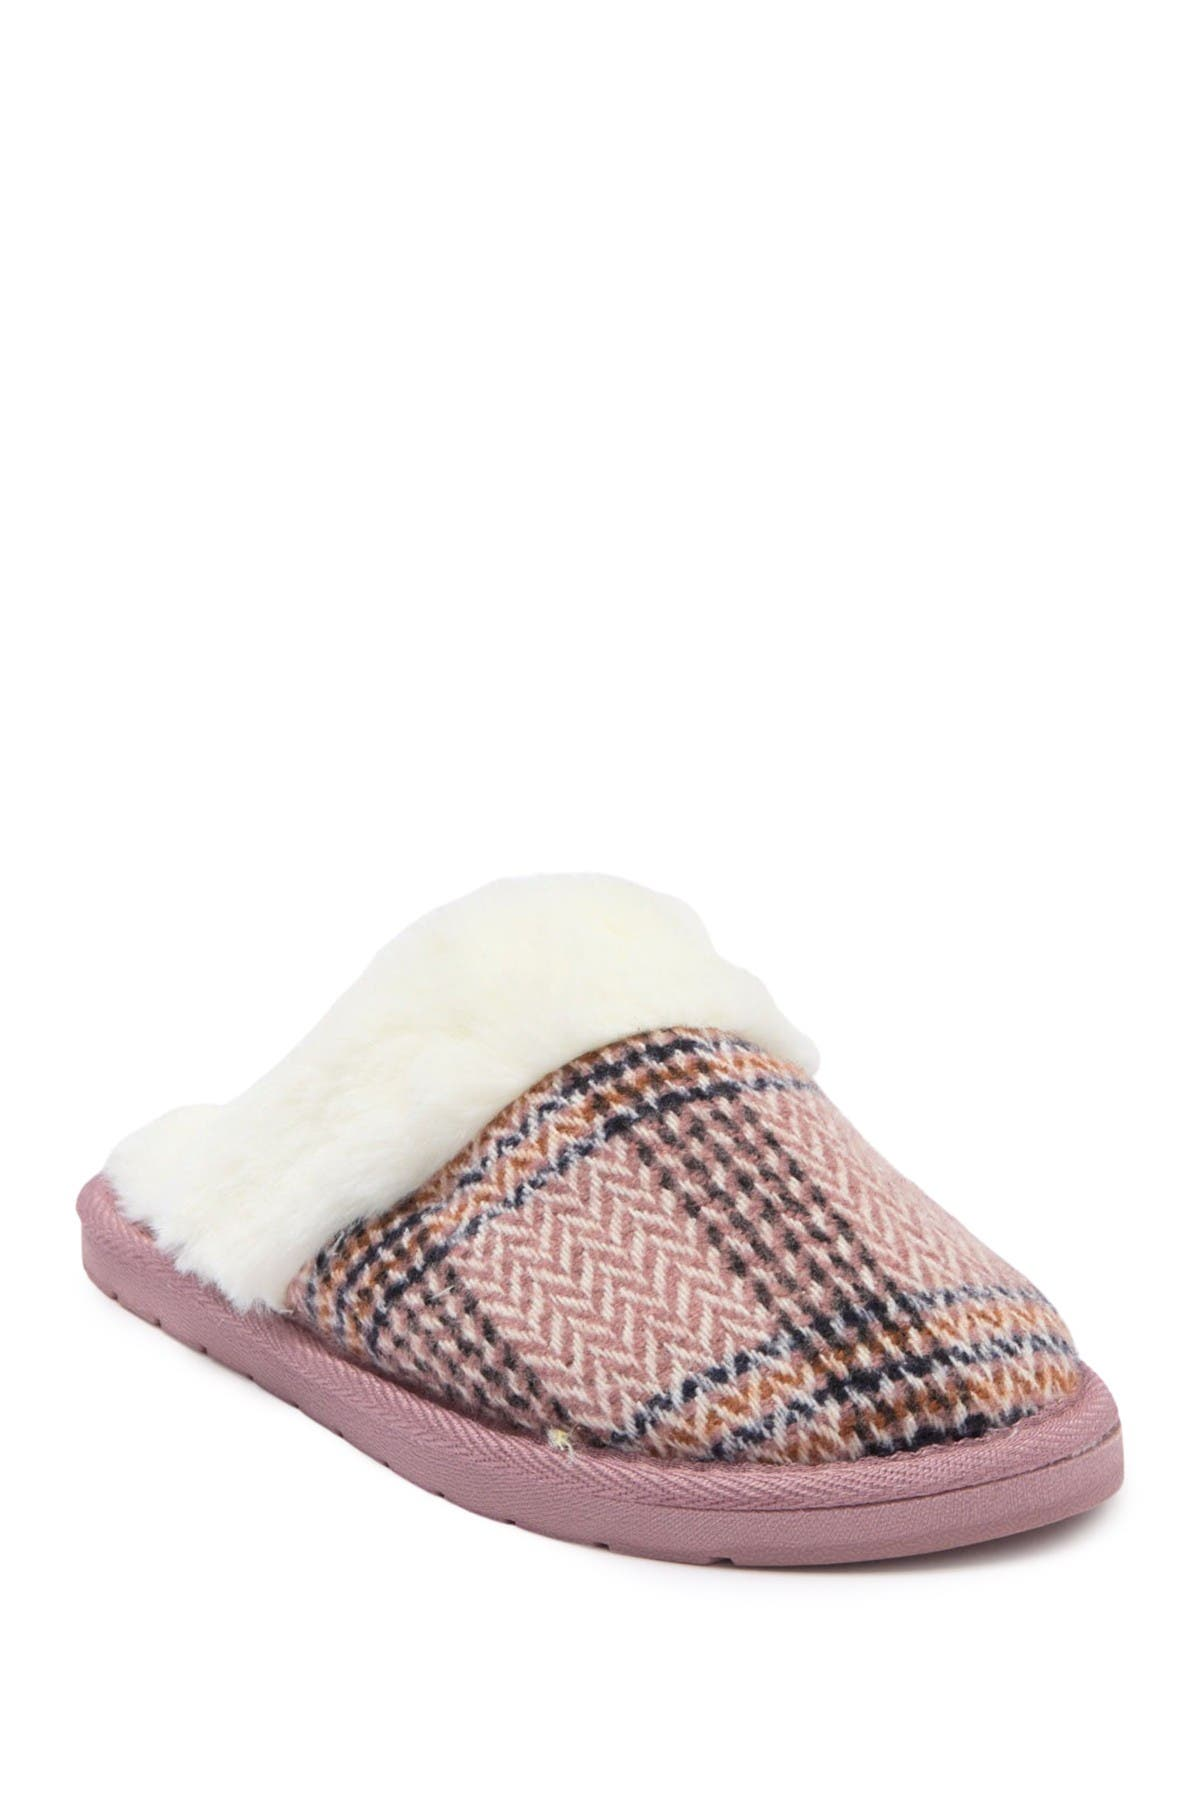 Image of Kensie Plaid Knit Slipper